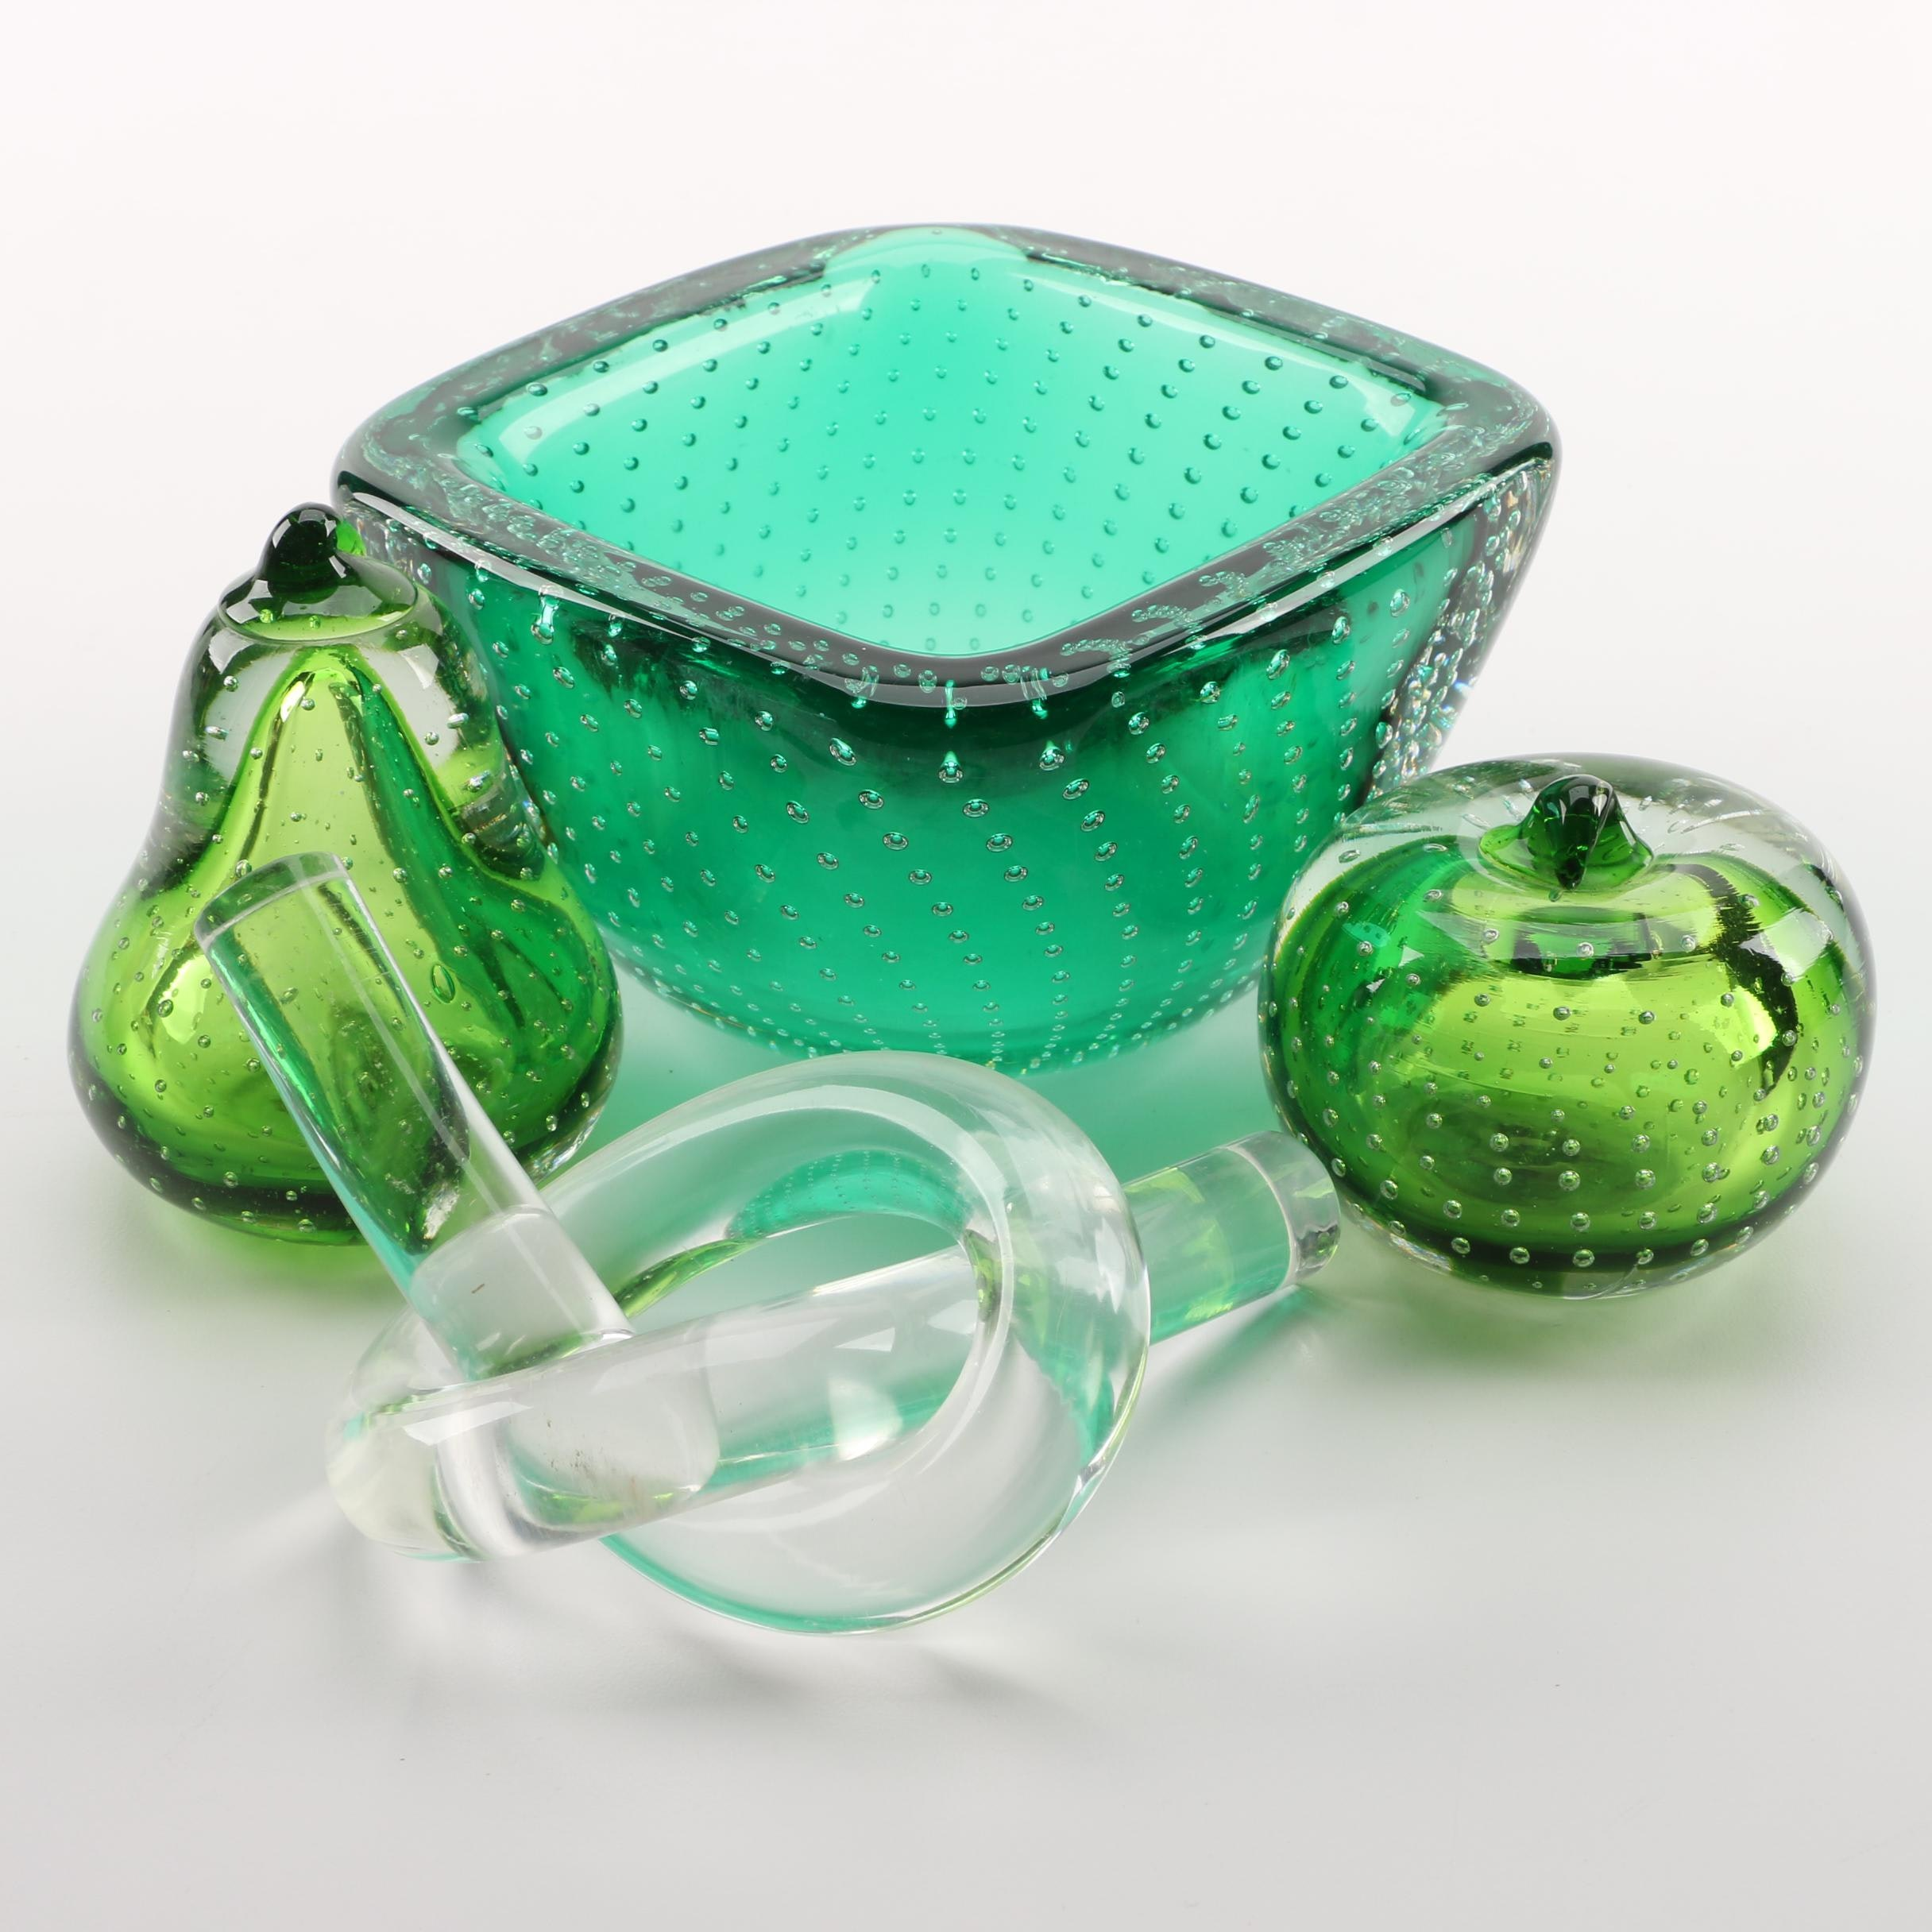 Blown Glass Bullicante Paperweights and Bowl with Knot Sculpture